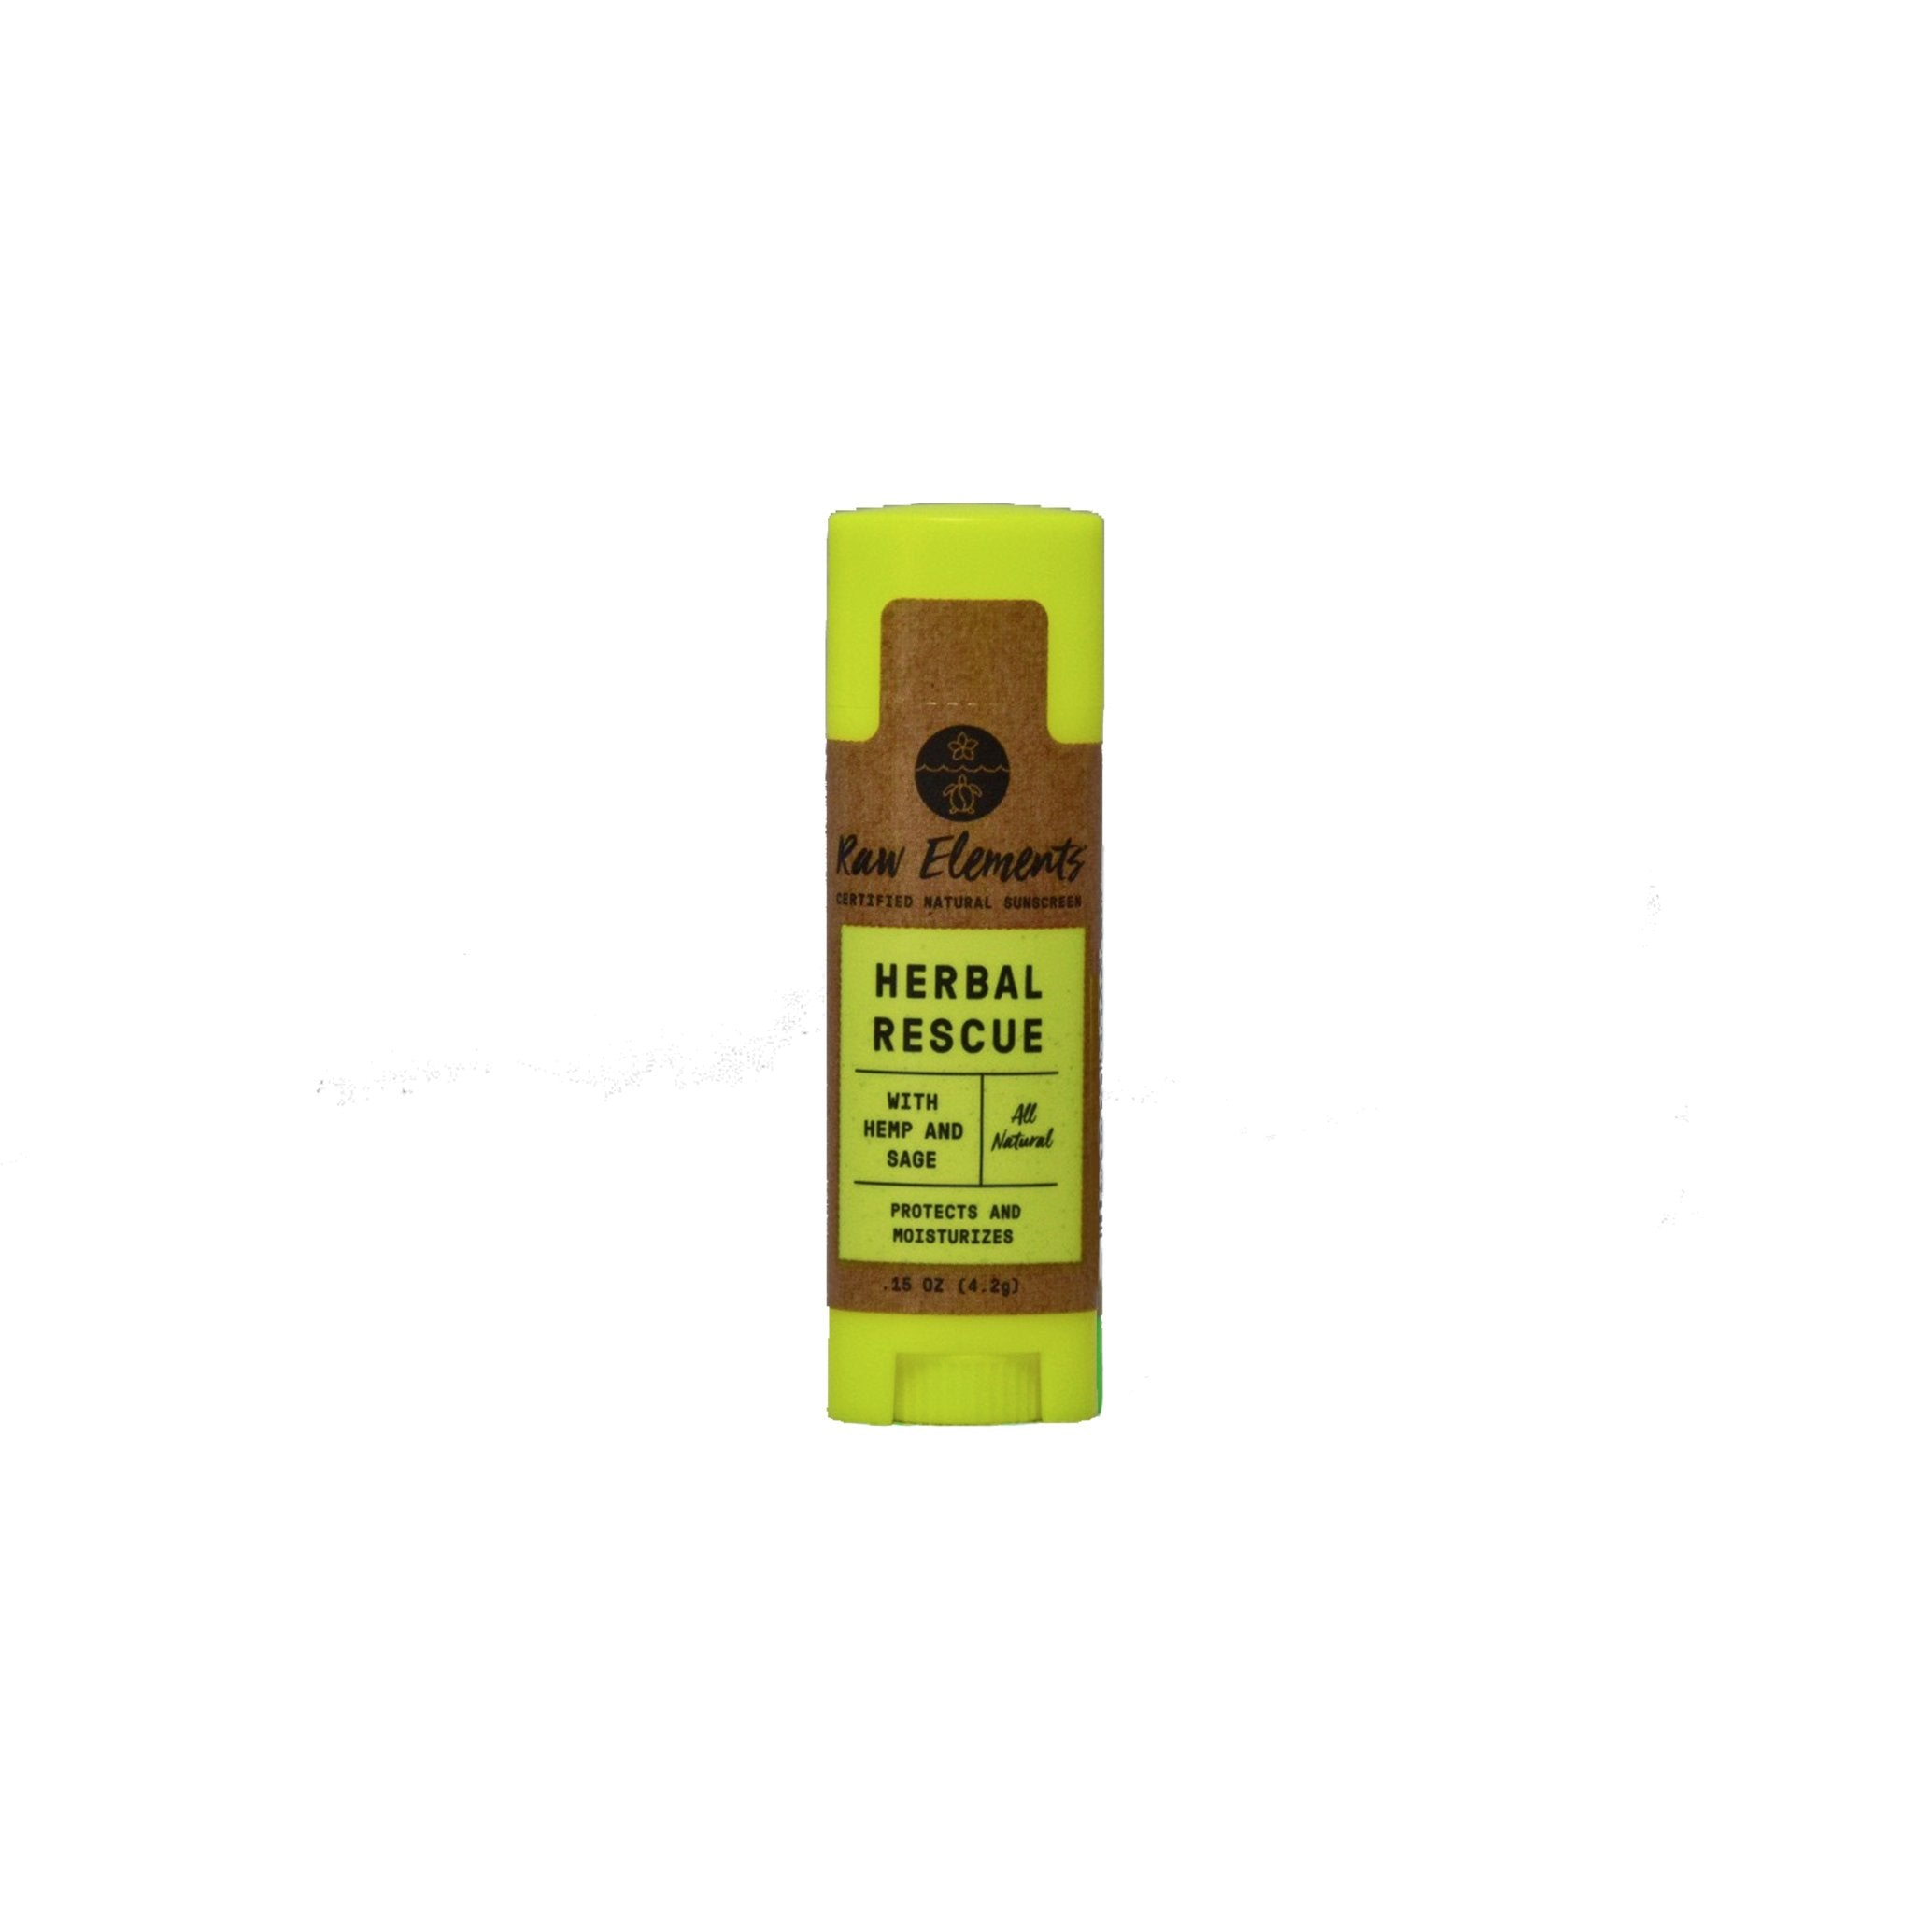 Raw Elements Herbal Rescue Lipbalm